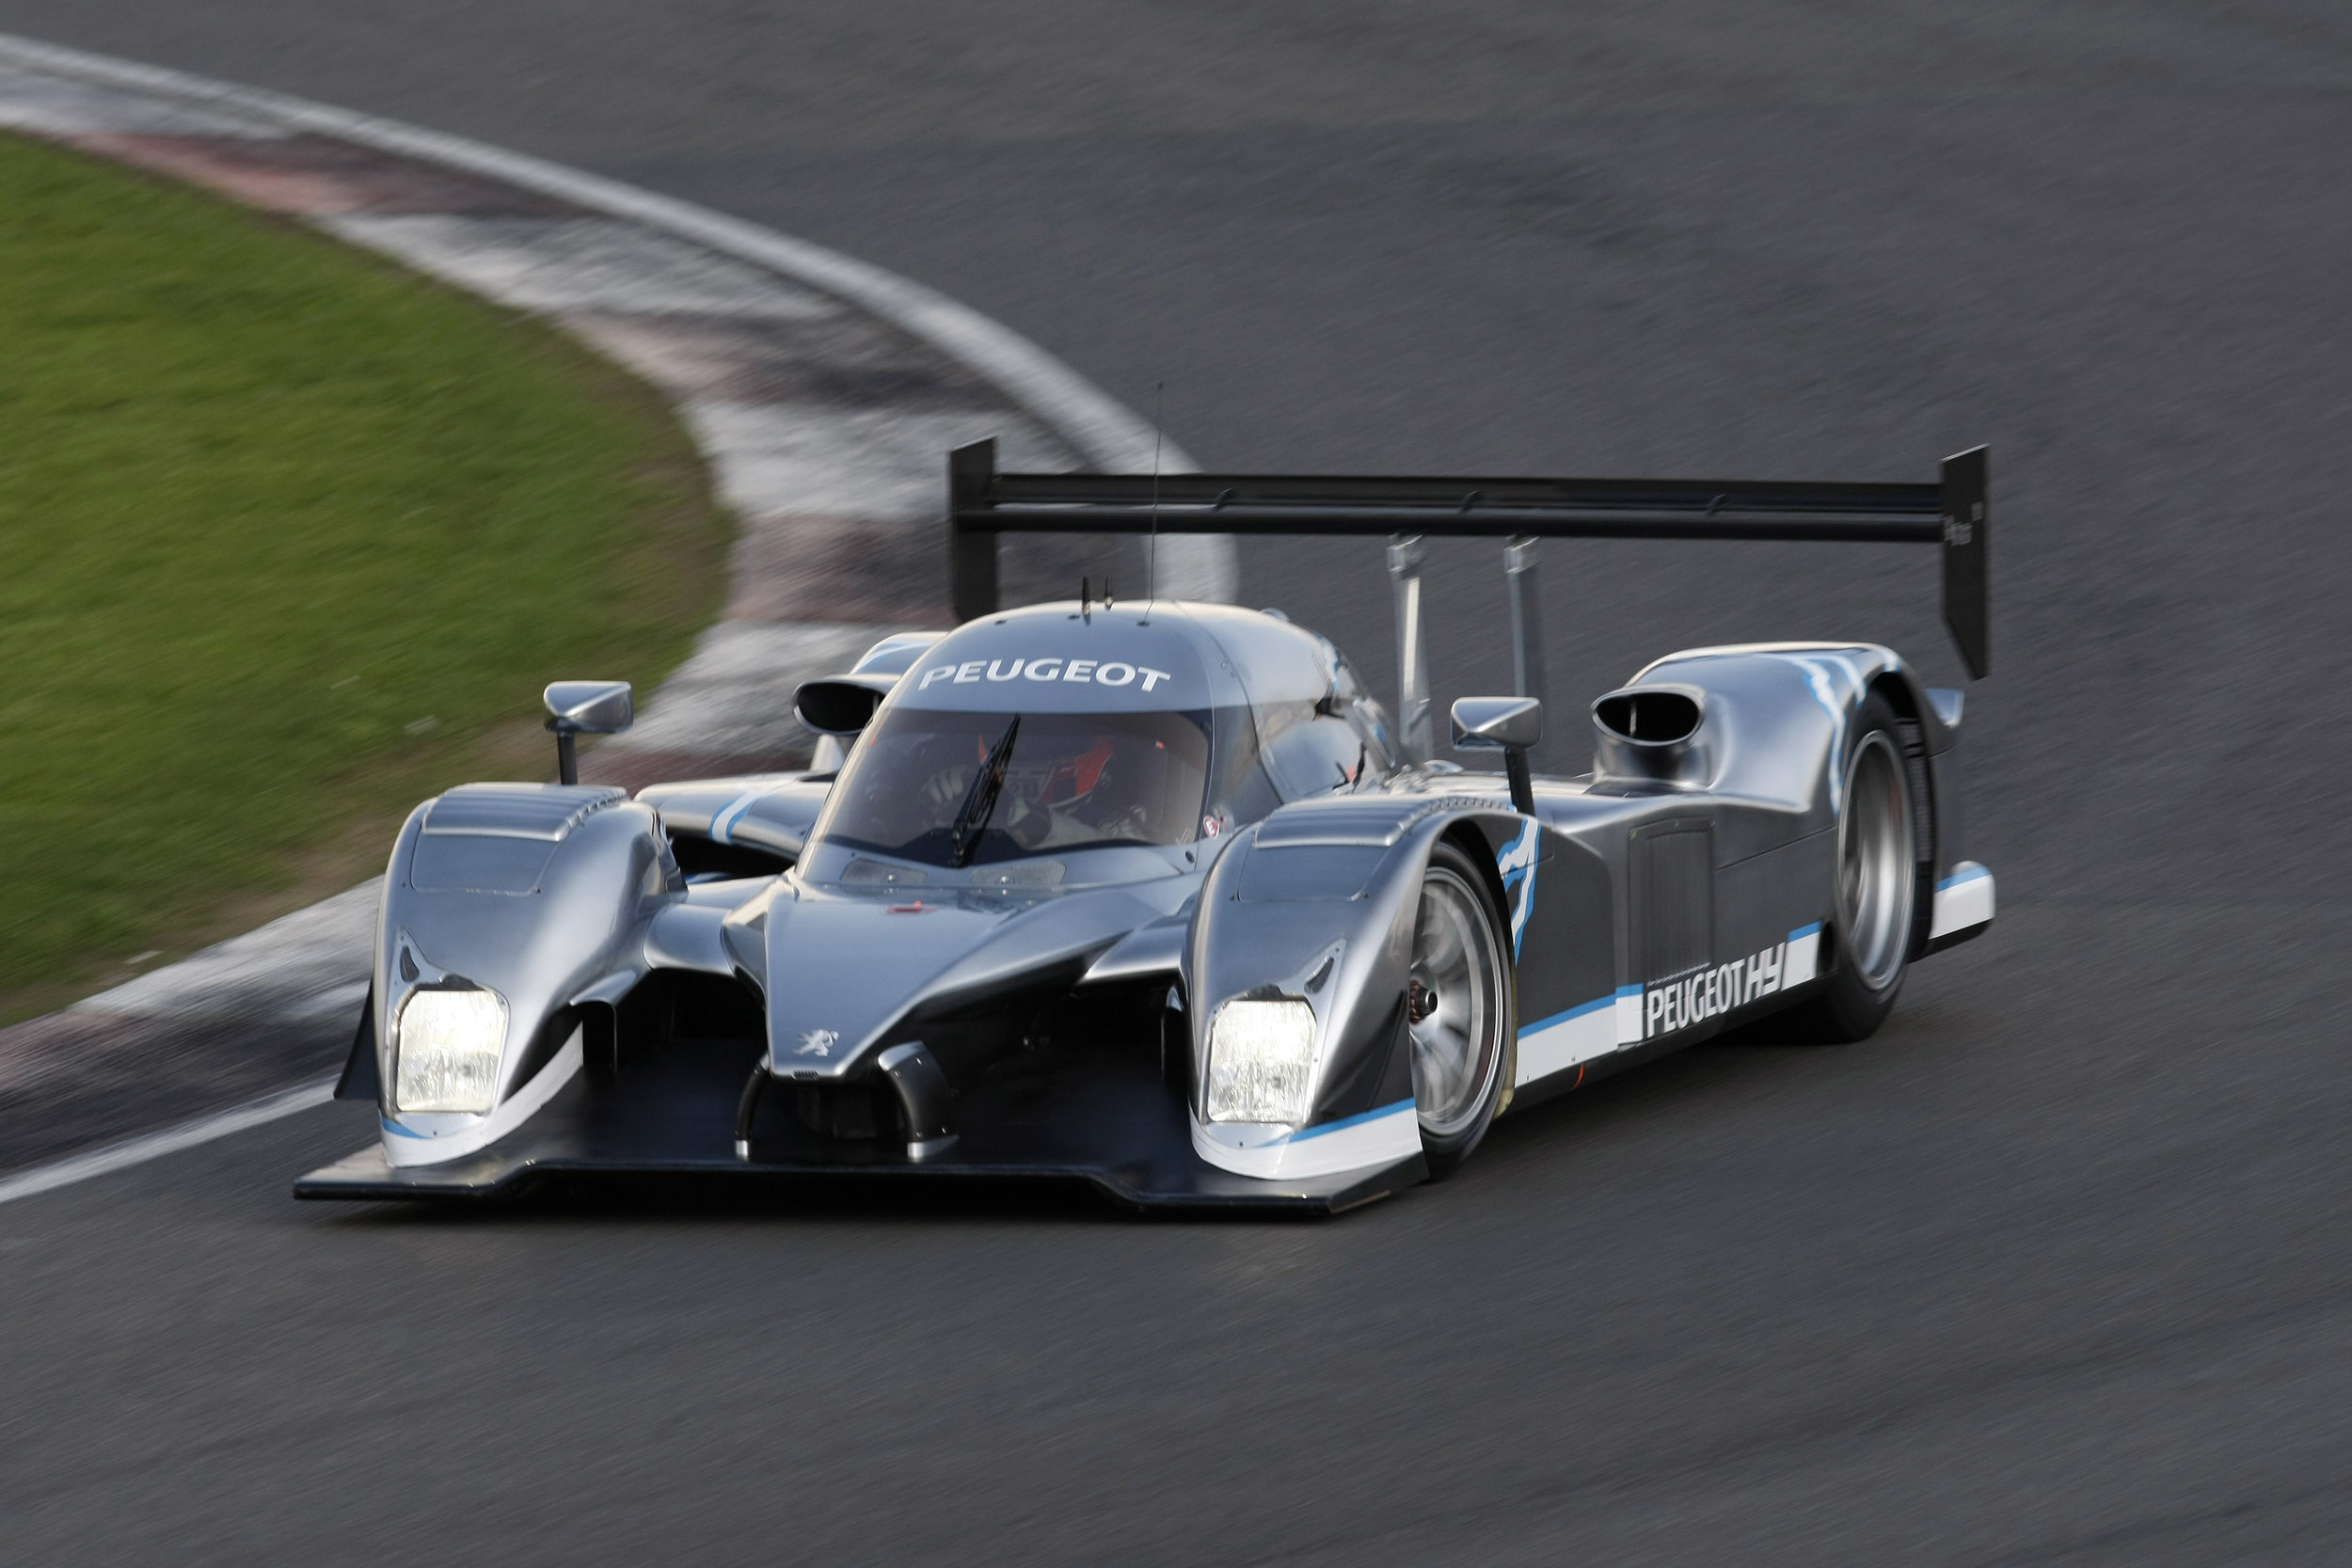 The Peugeot 908 HY running at Silverstone back in 2008